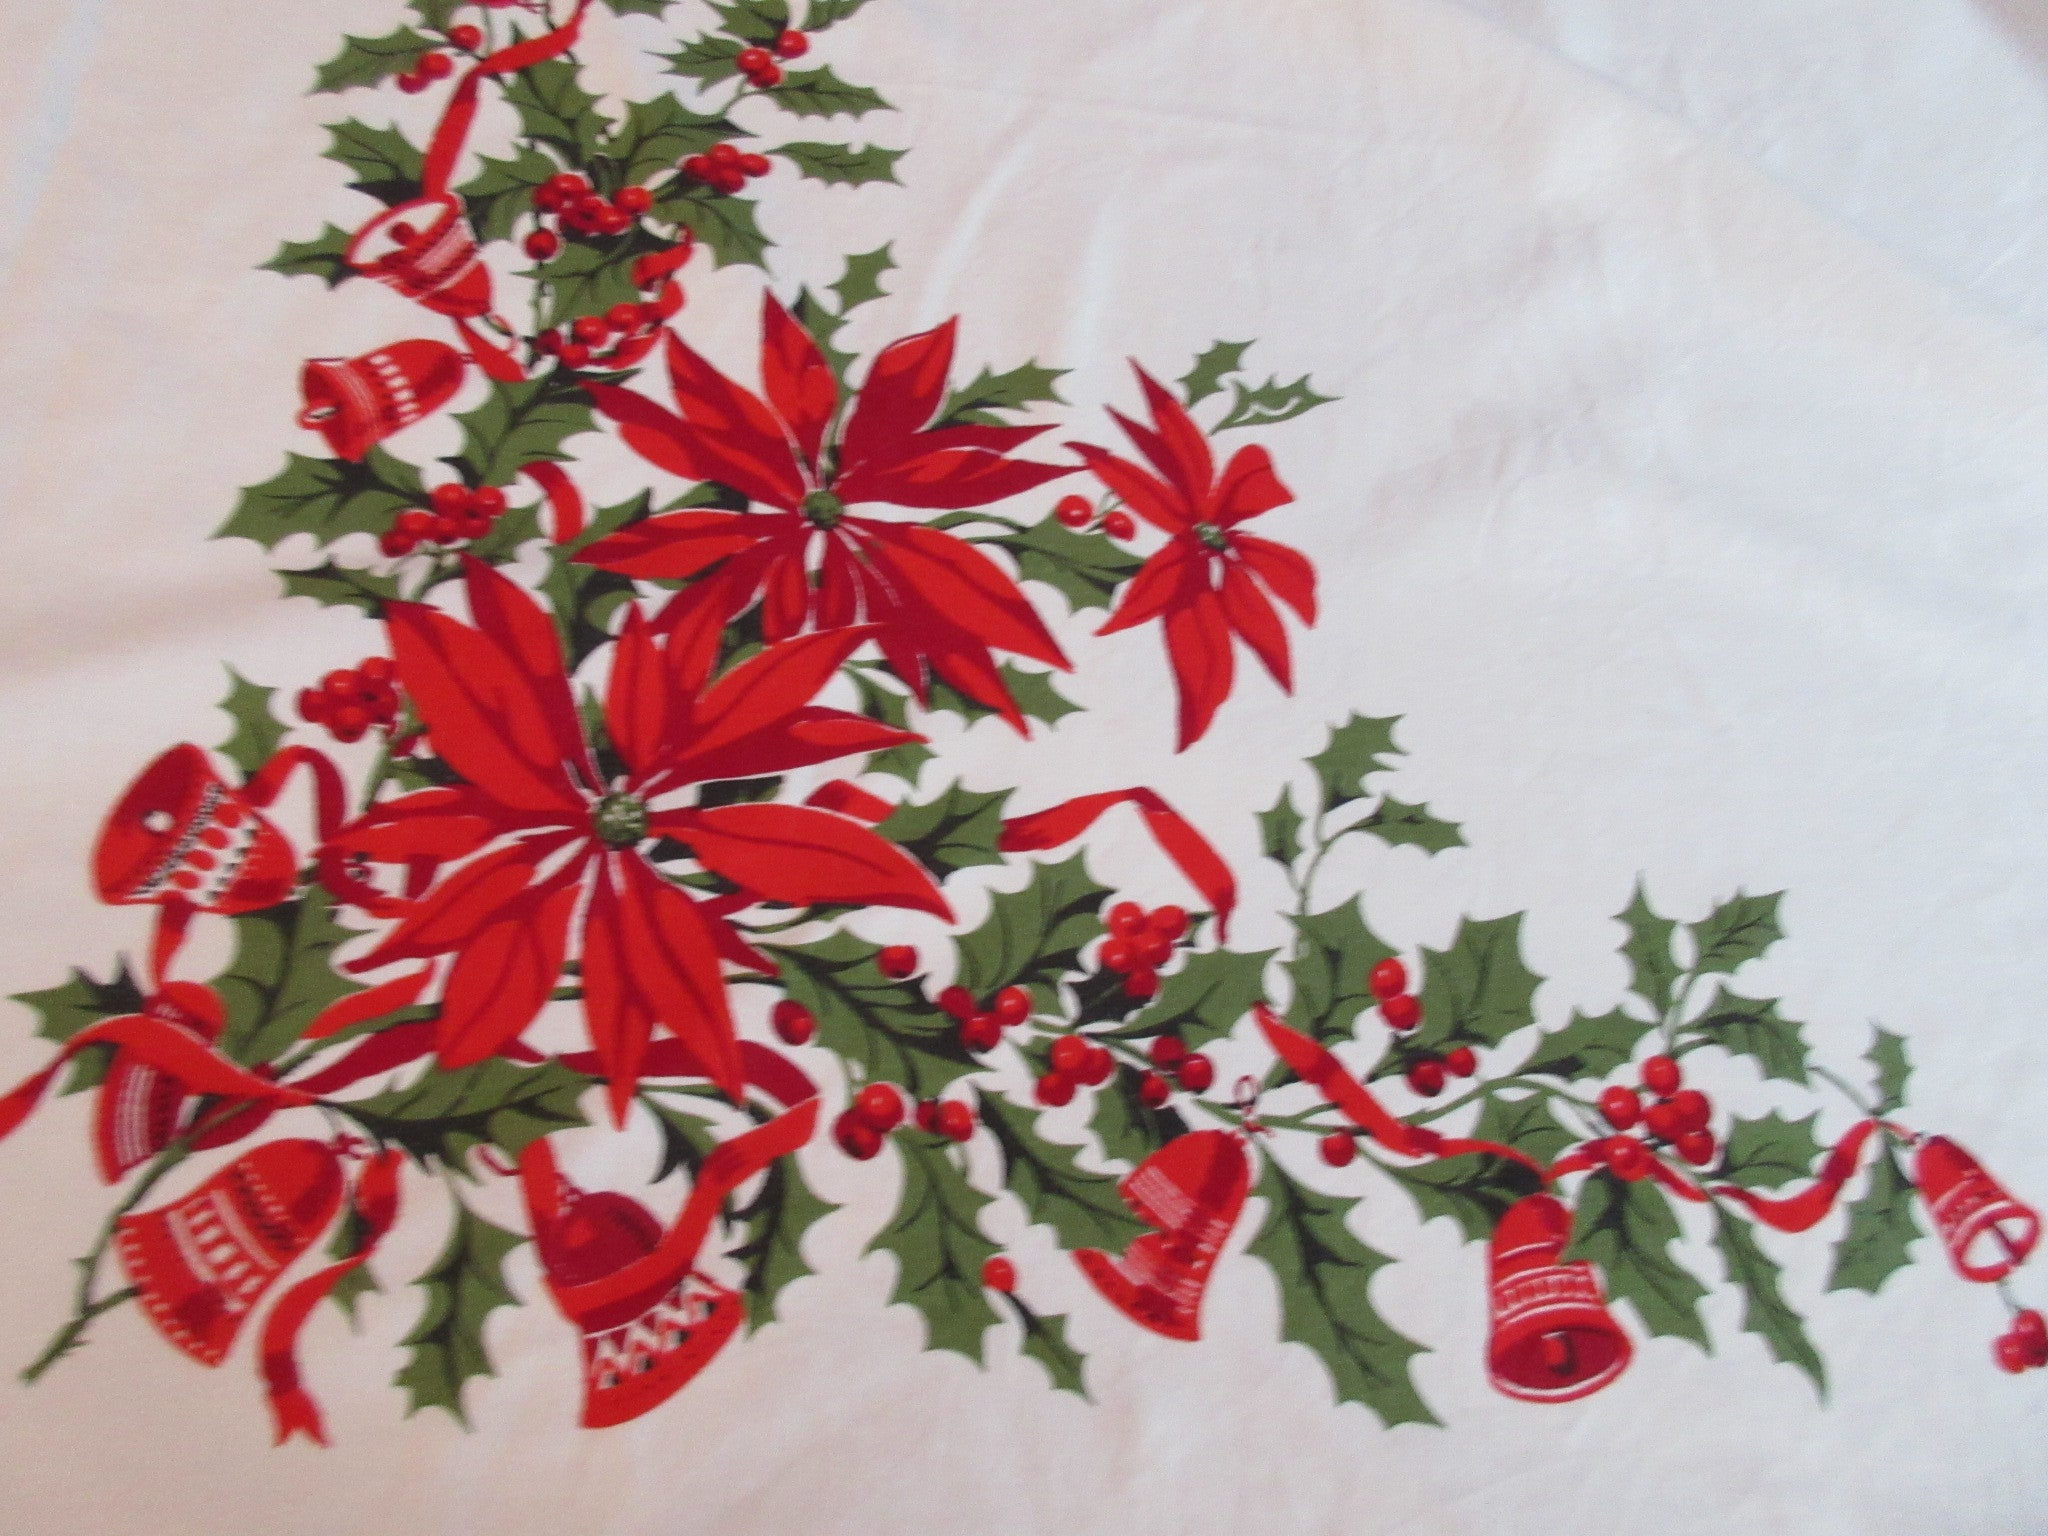 Wilendure Christmas Poinsettias Bells Holly Vintage Printed Tablecloth (67 X 53)